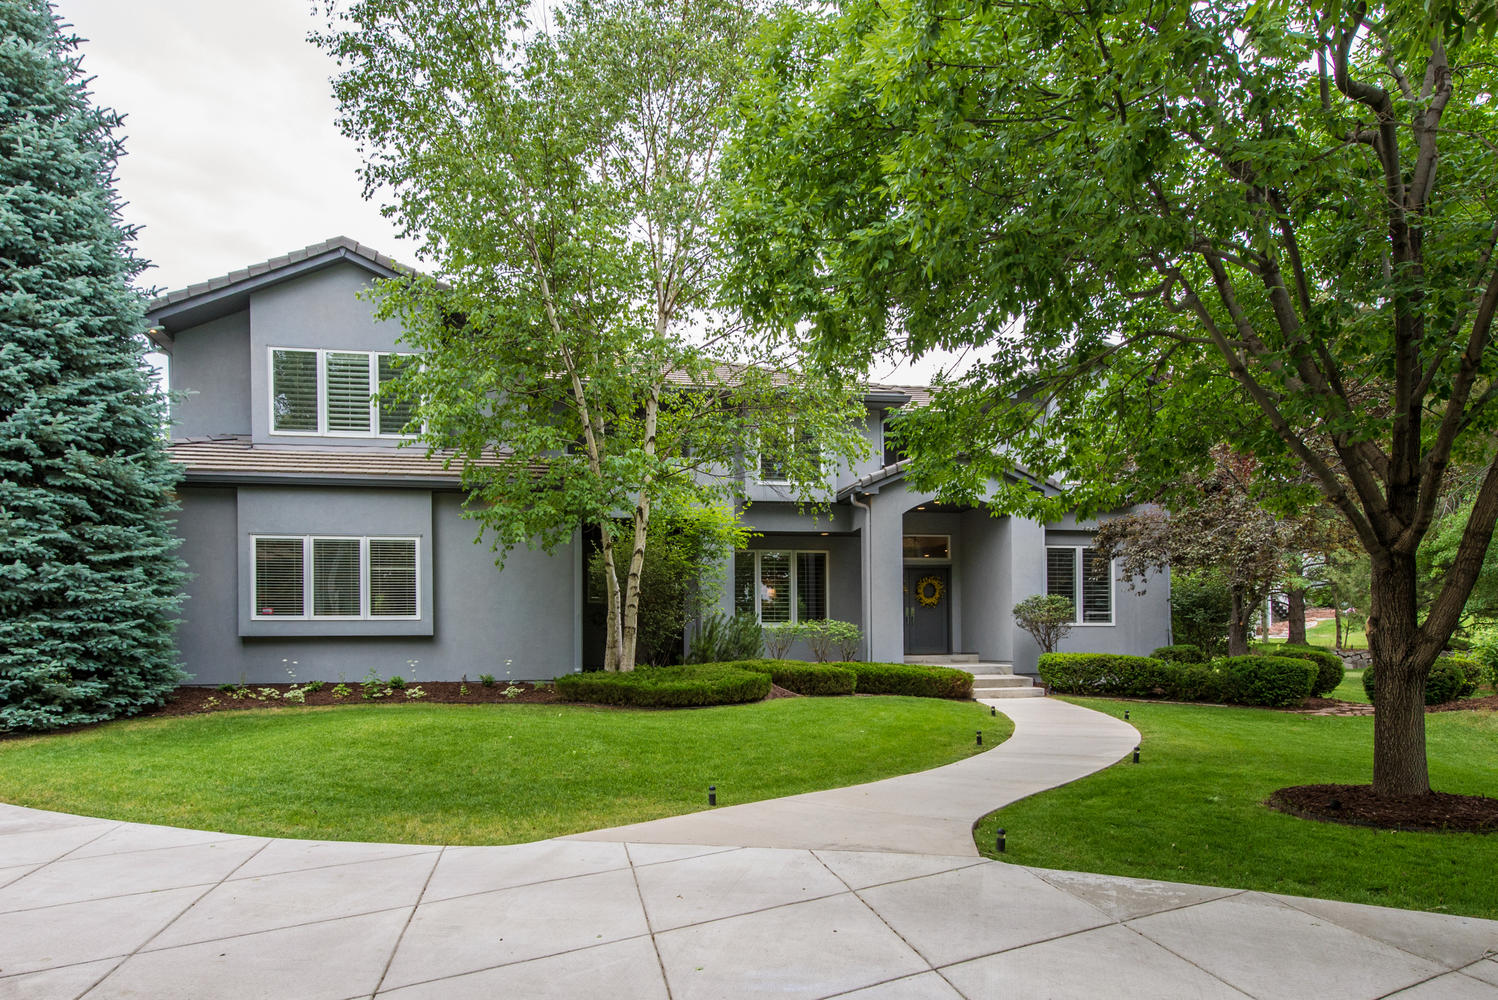 5560 Pine Ct, Greenwood Village, CO 80121